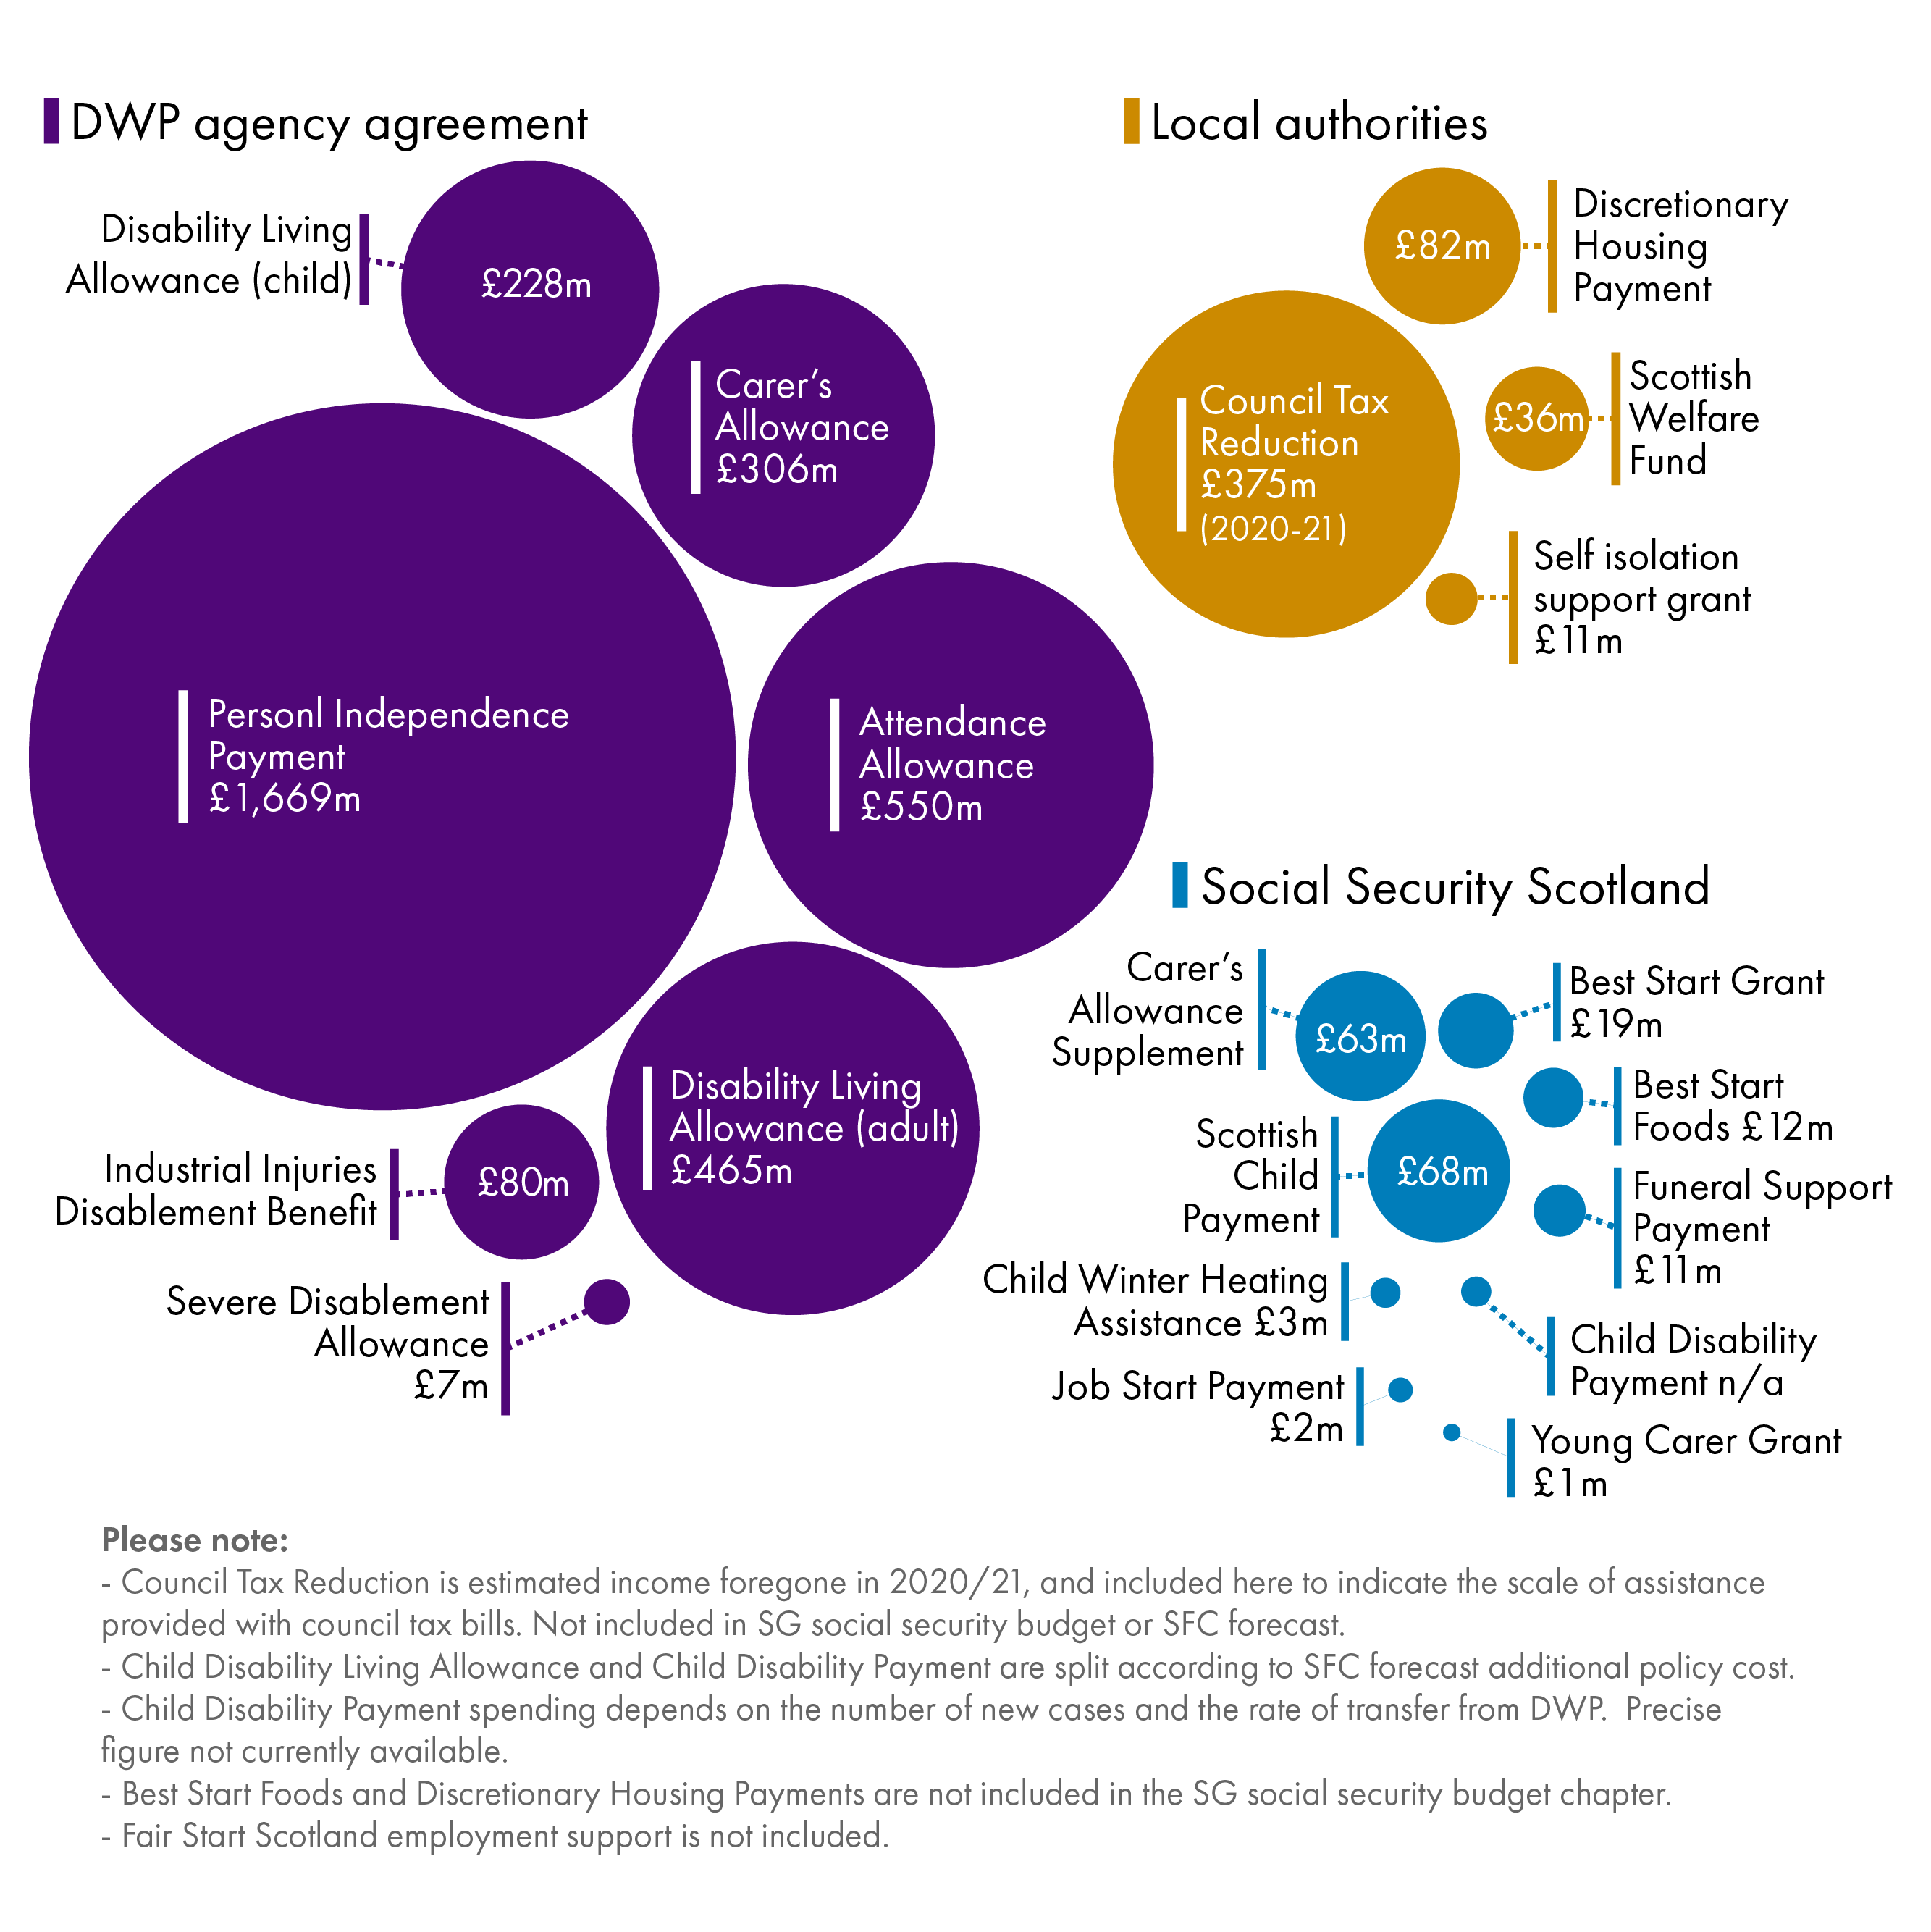 Shows how, in 2021 most devolved benefits are still administered by DWP under Agency Agreements. This is dominated by PIP (£1,699 million spending). If council tax reduction is included (£351 million) , local authorities come next, followed by Social Security Scotland whose largest benefit in 2021 is the SCP at £68 million.